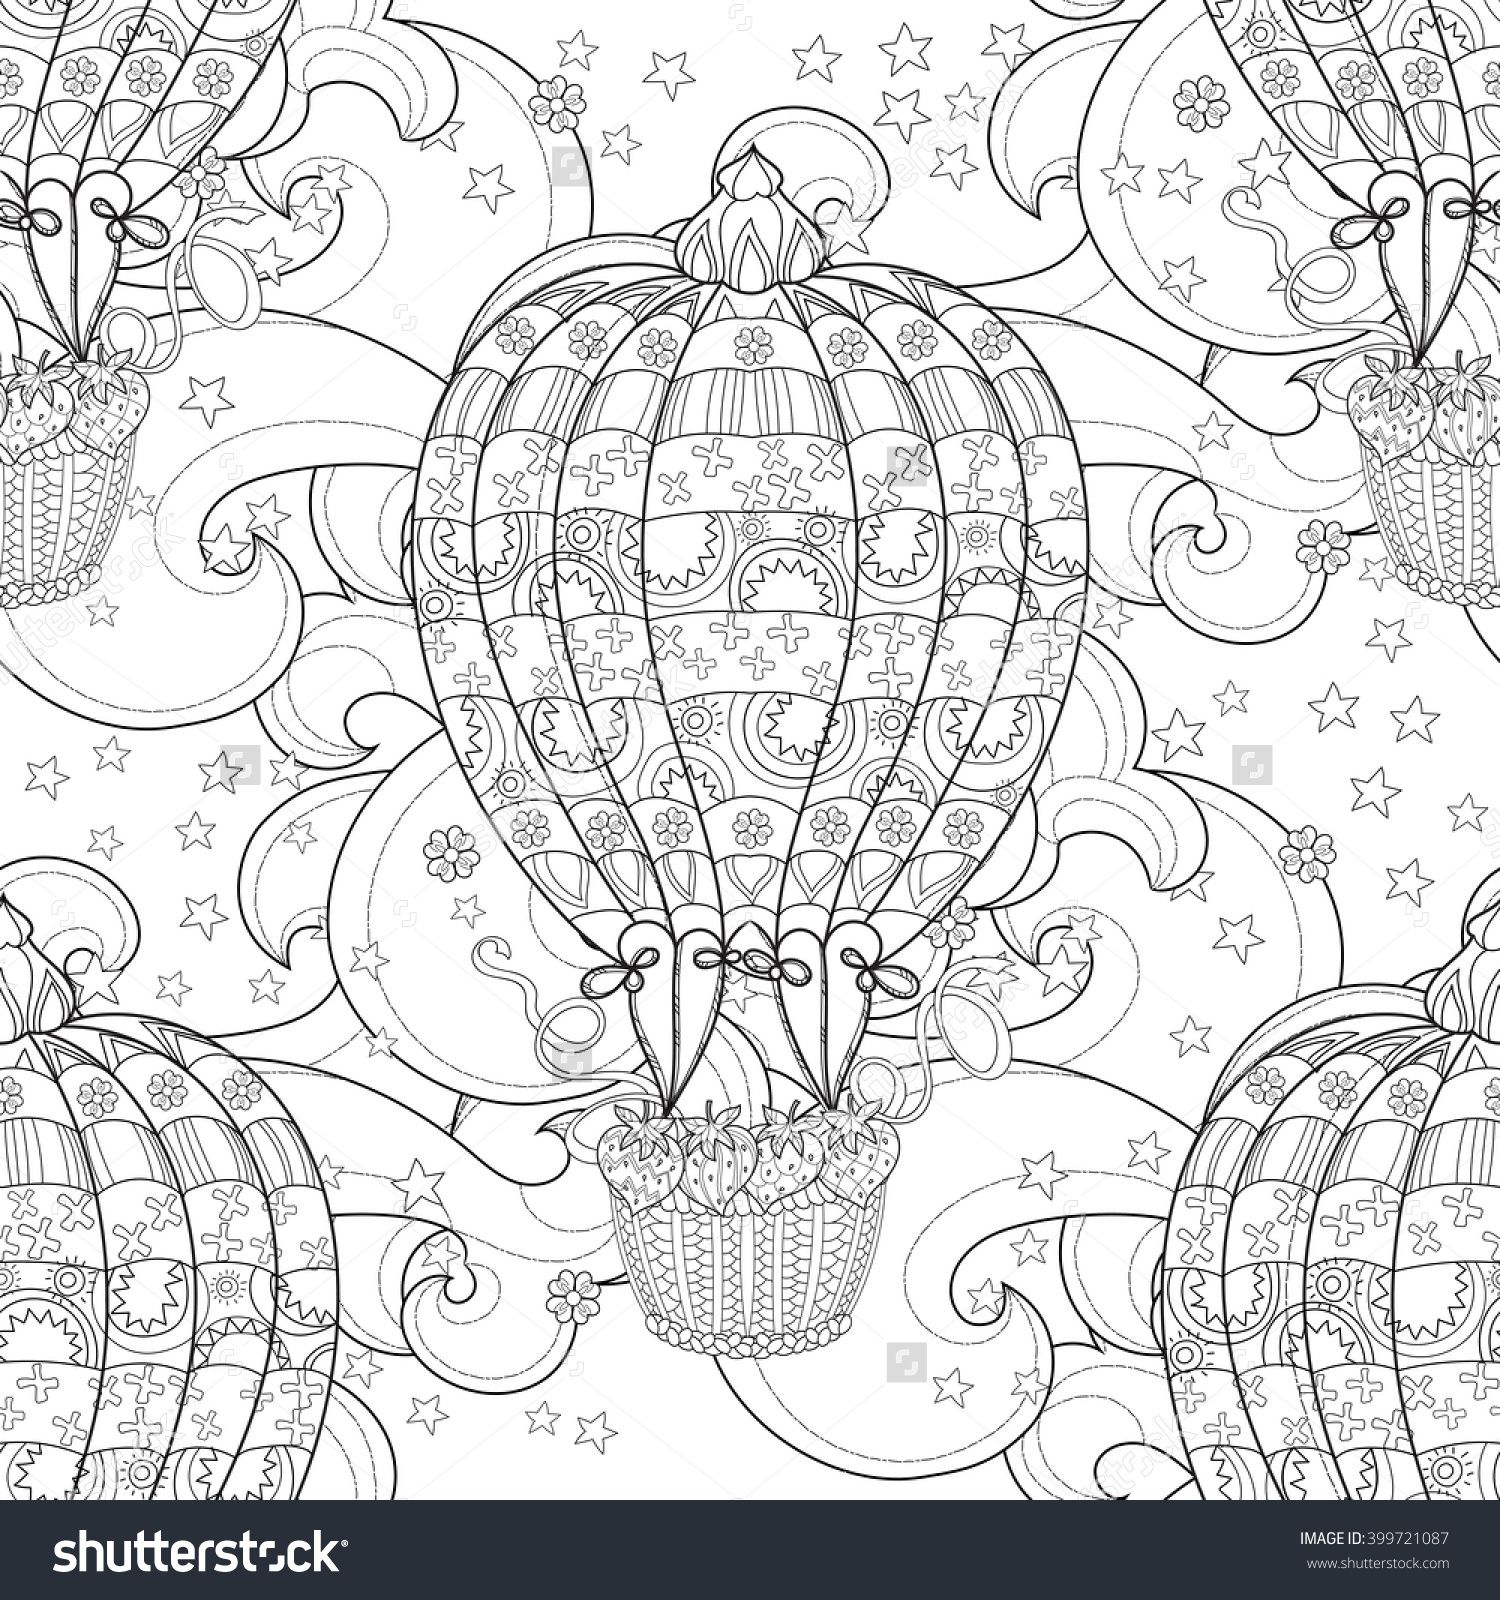 The coloring book poster - Hand Drawn Doodle Outline Air Baloon In Flight Decorated With Floral Ornaments Zentangle Illustration